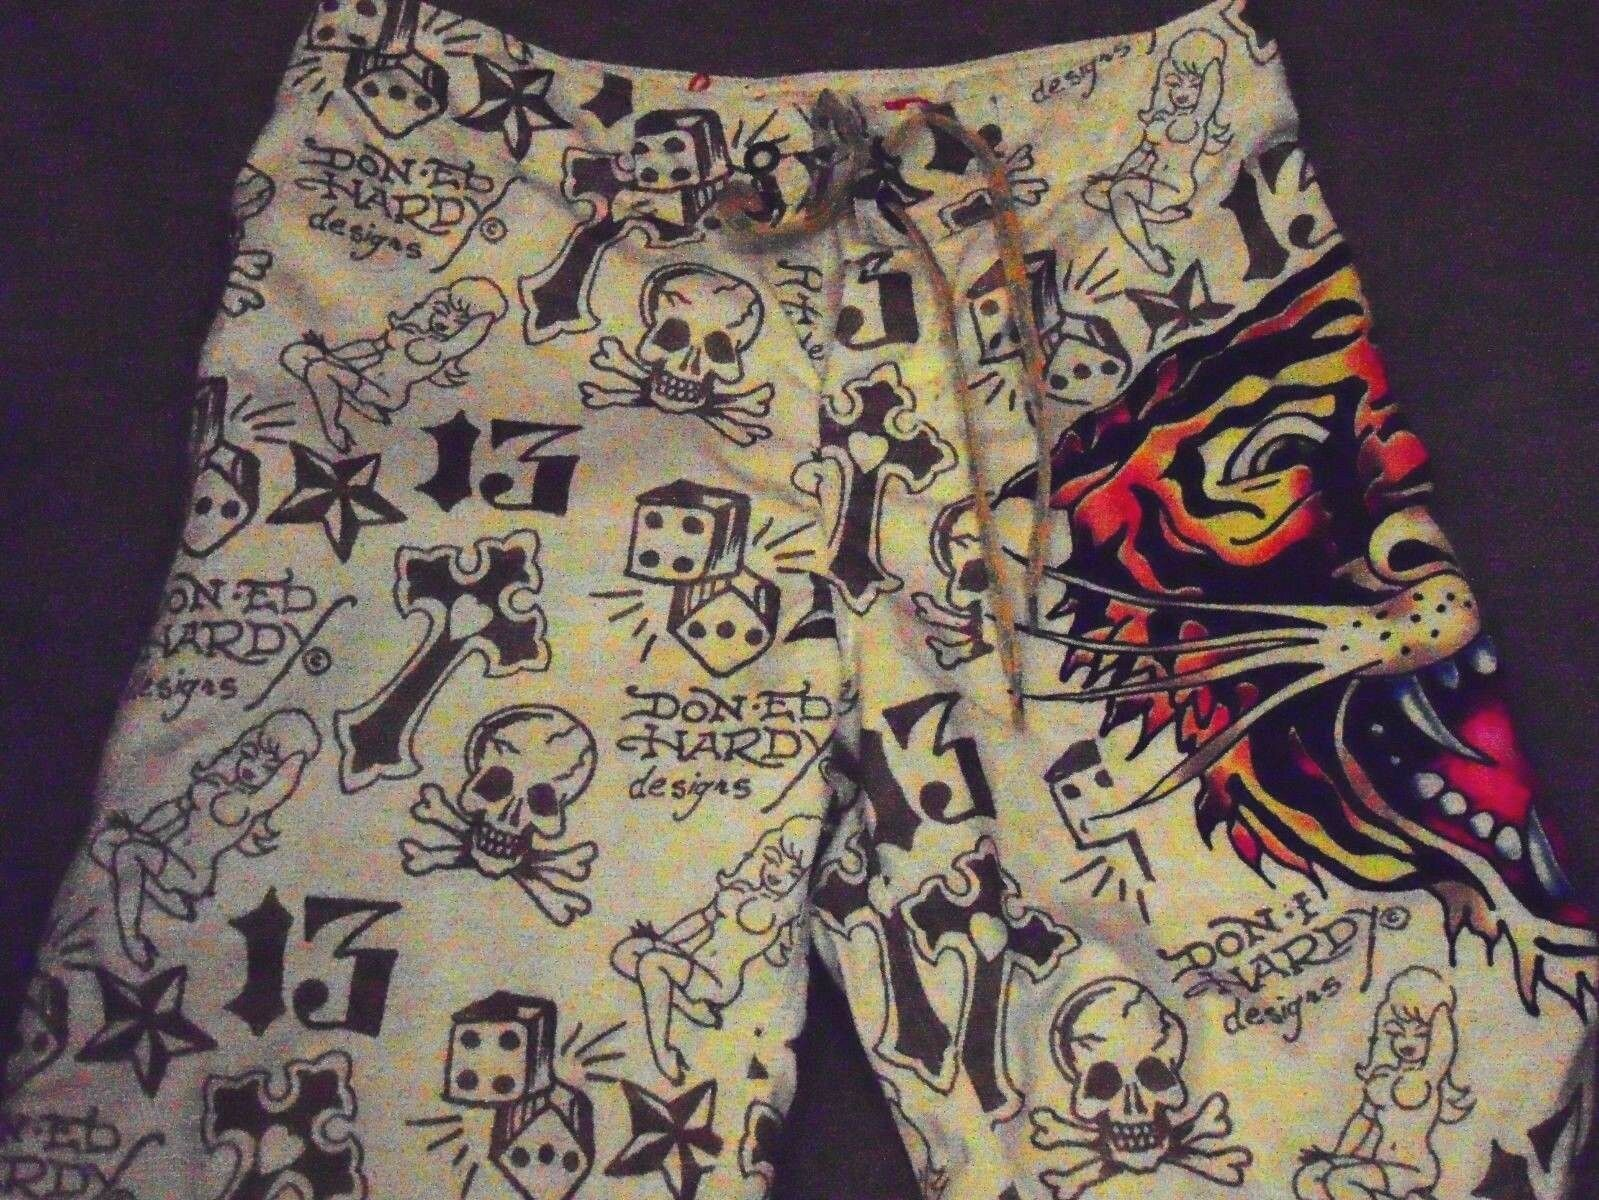 Ed Hardy Men's Board Shorts Surf Or Die Skull sexy women Size 32